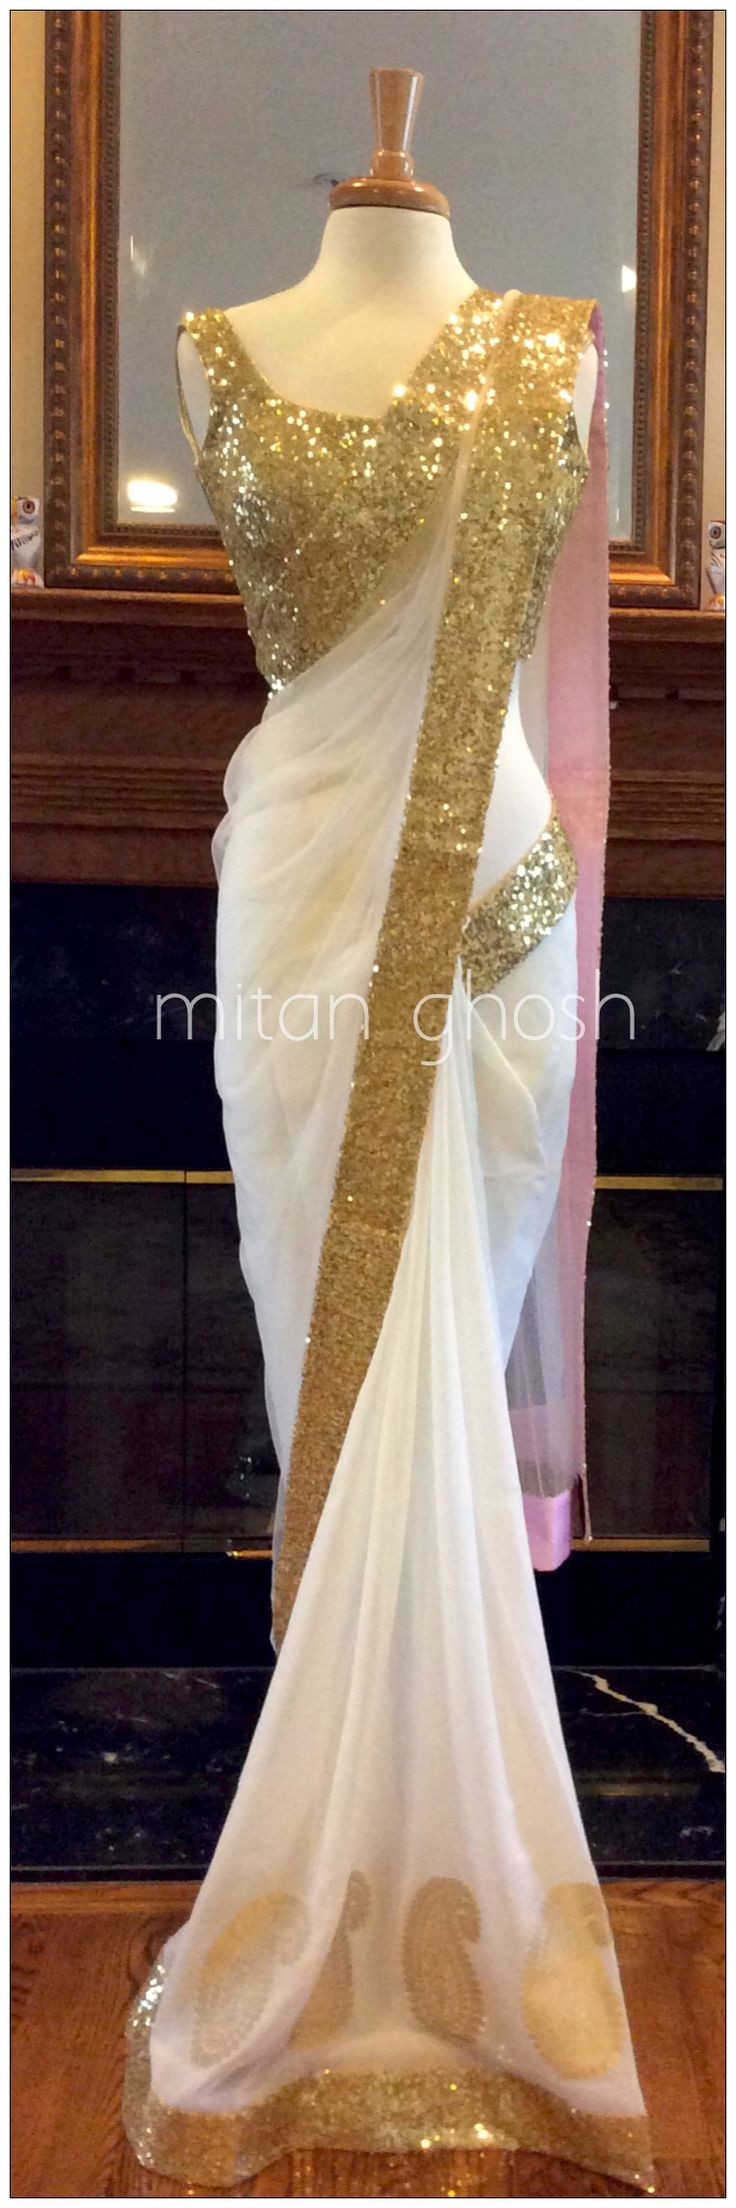 Bridesmaid saree